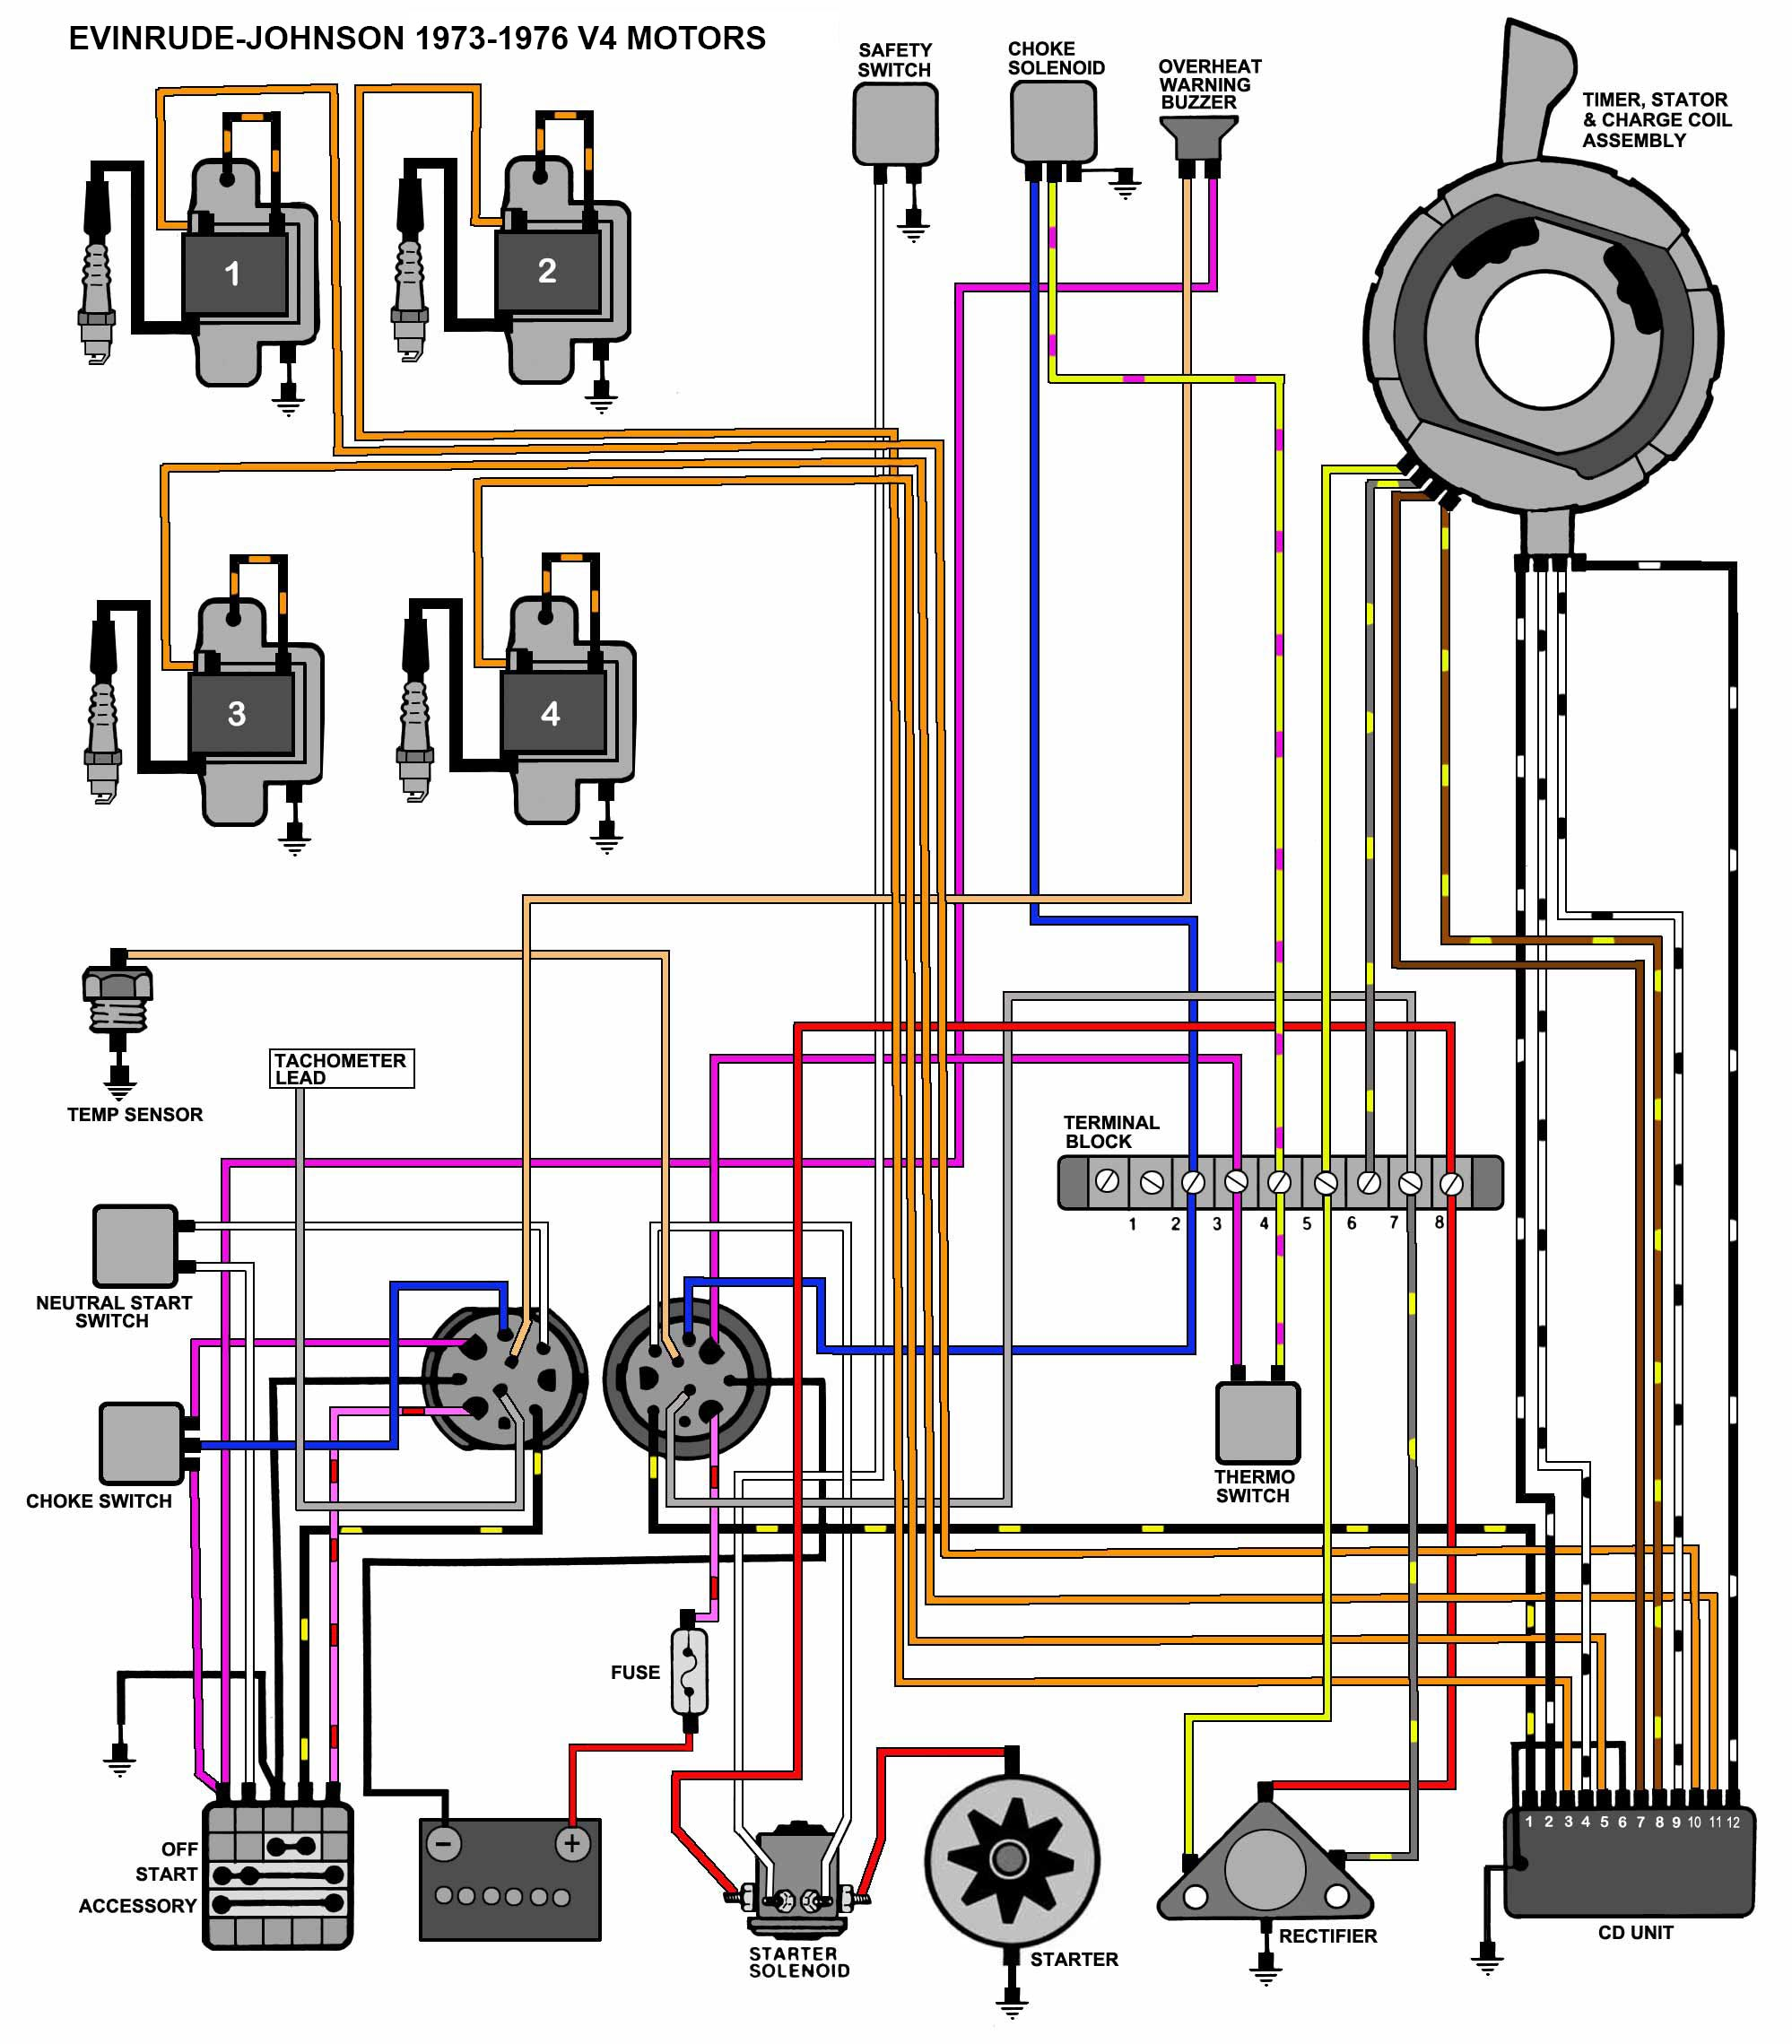 Furnace Blower Wiring Diagram 2890 566 Libraries